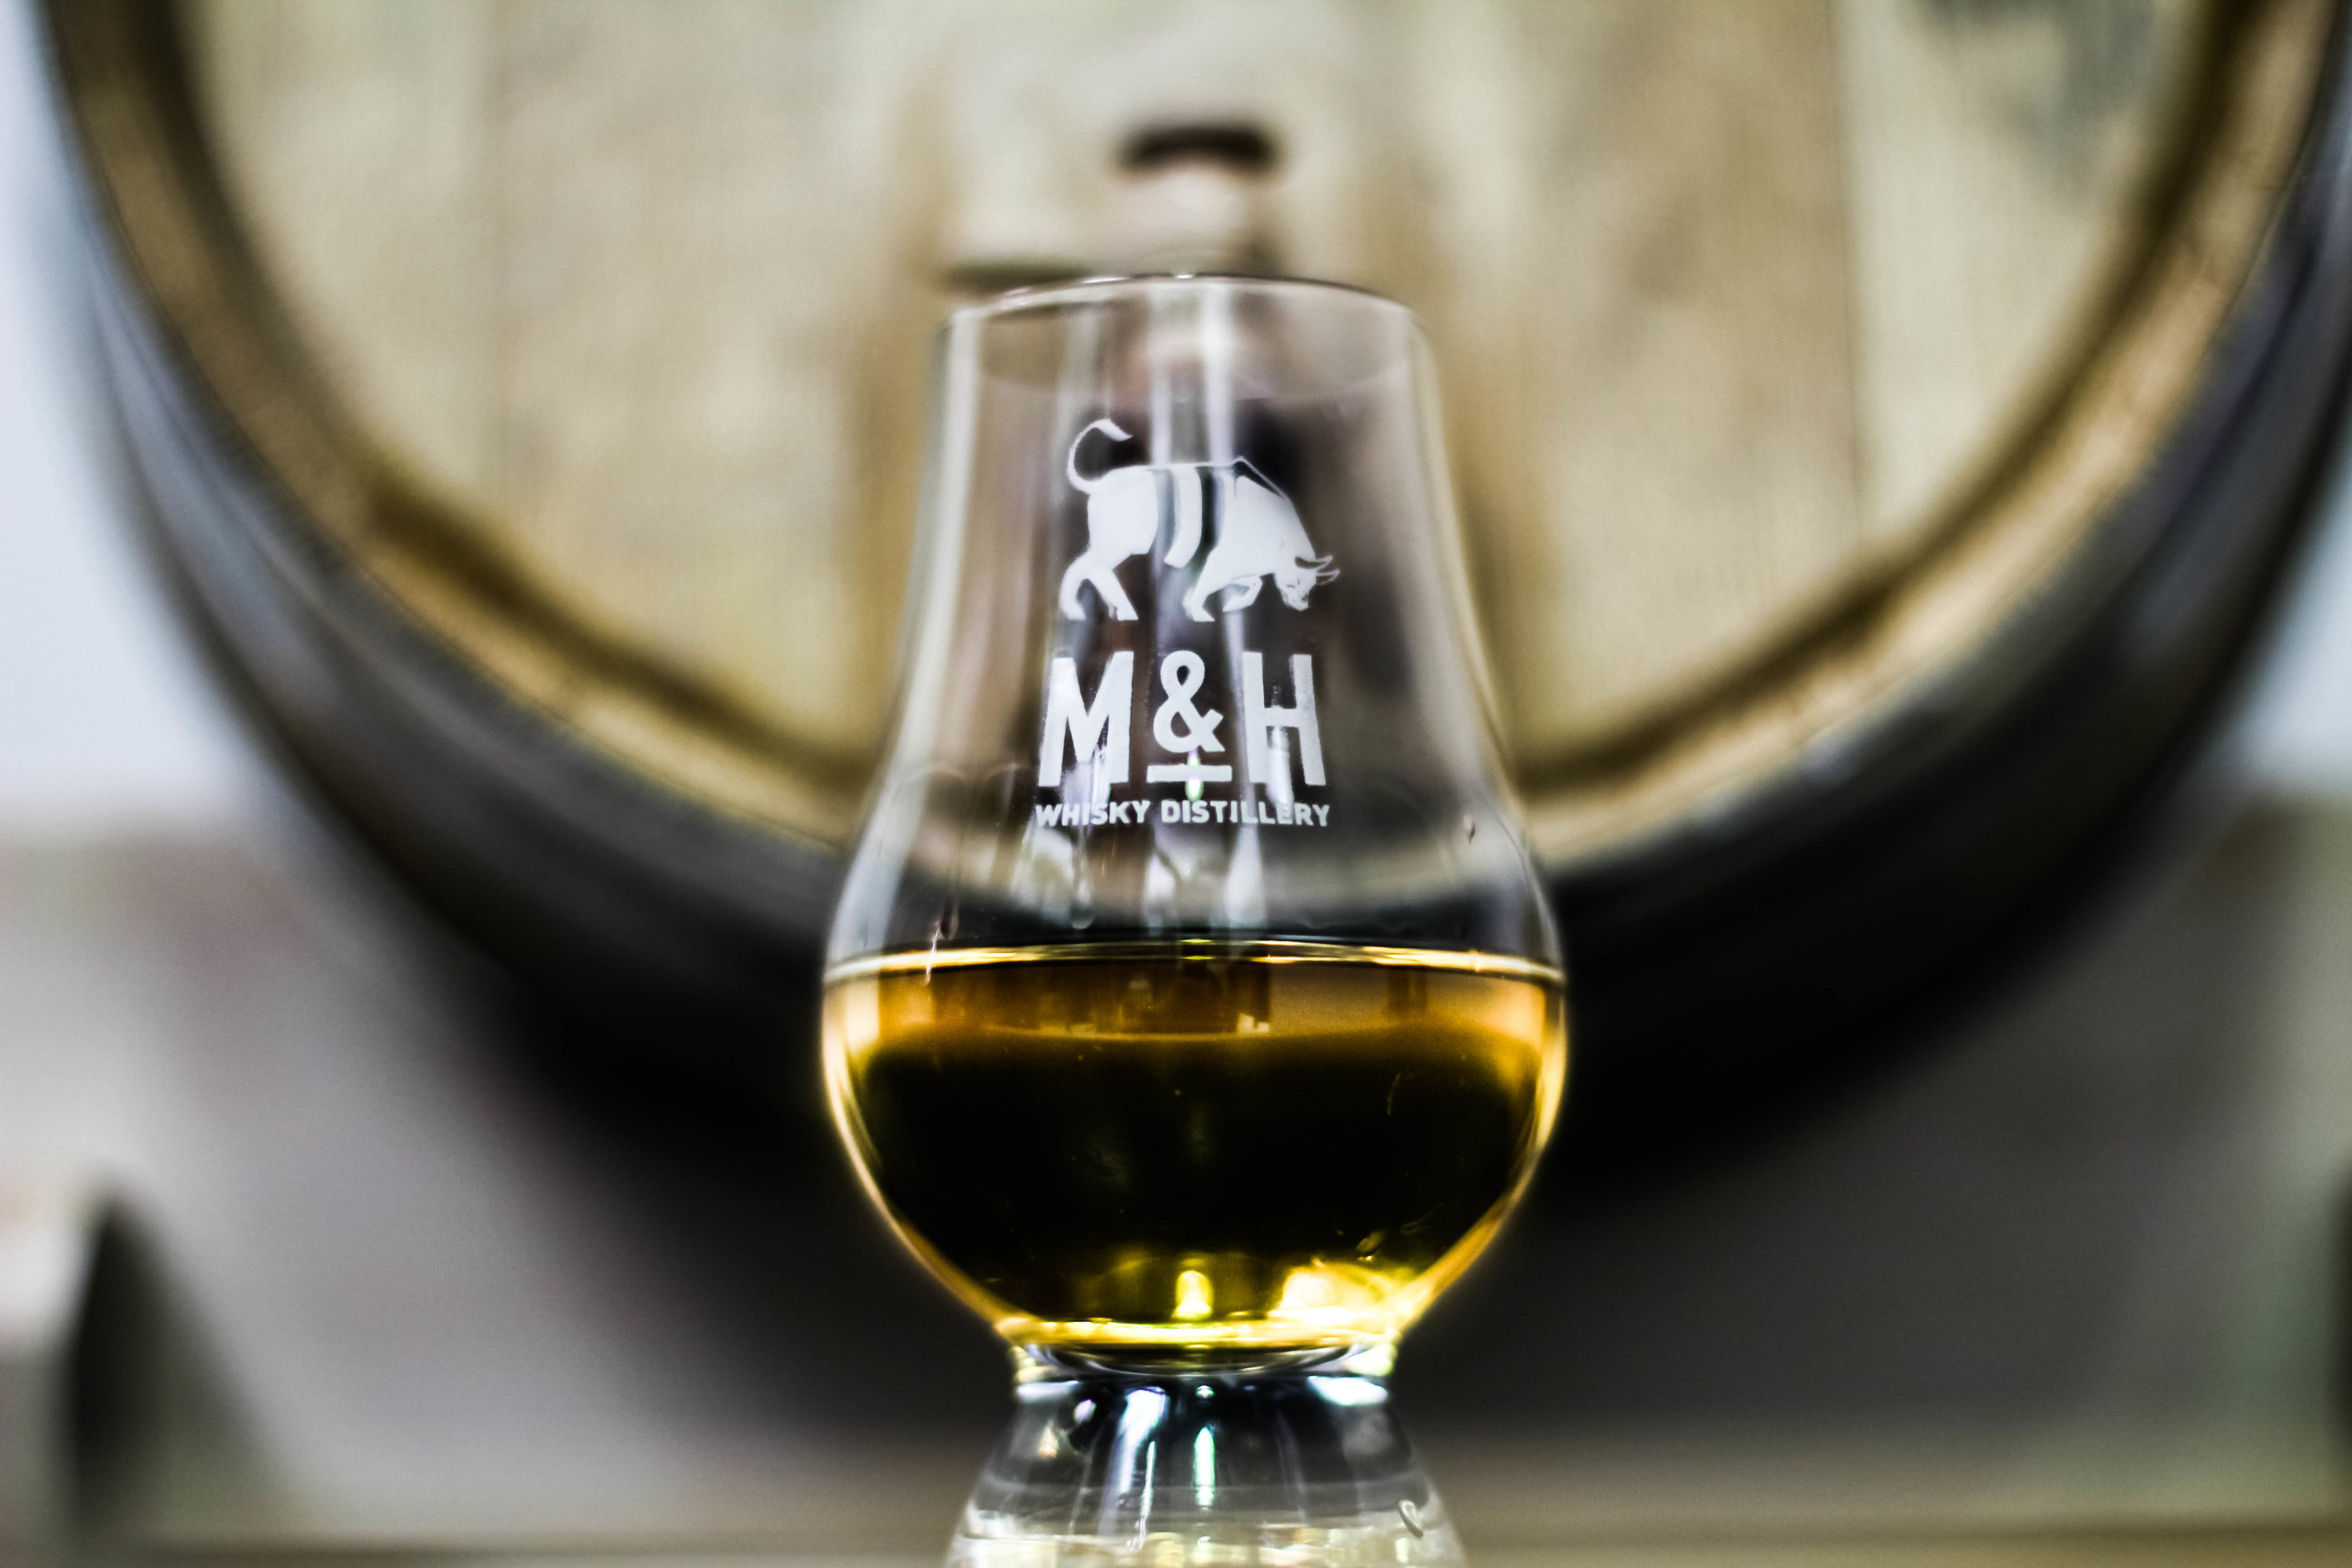 Warm up with whisky